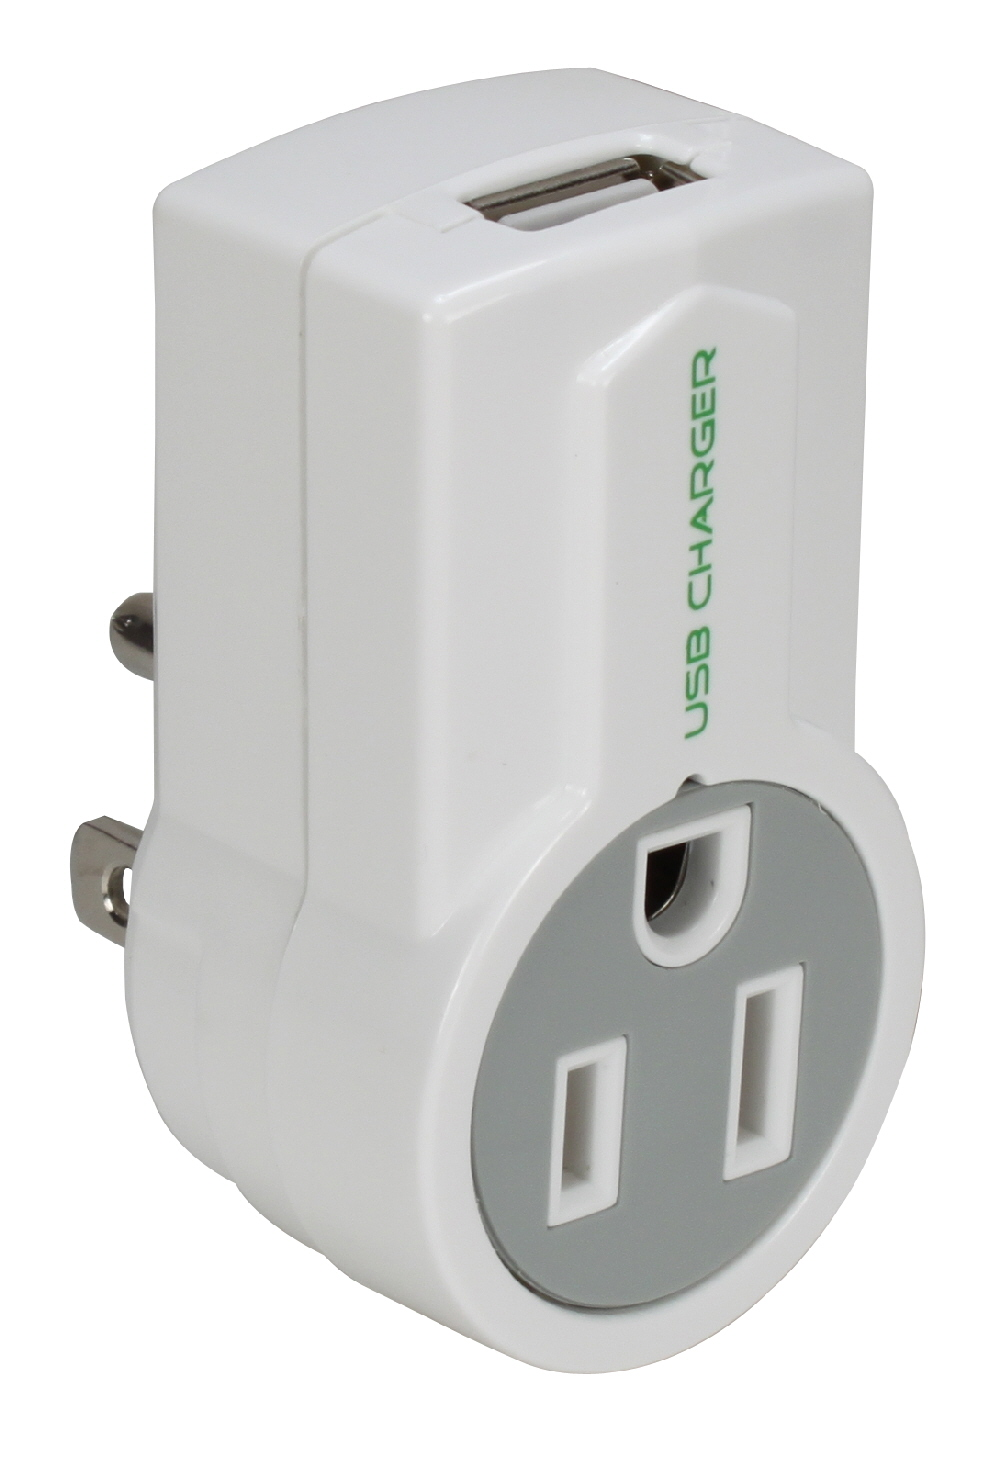 1-Outlet 1Amp USB AC Charger with Rotating Power Plug - PP-68PL-AC1100-CMT